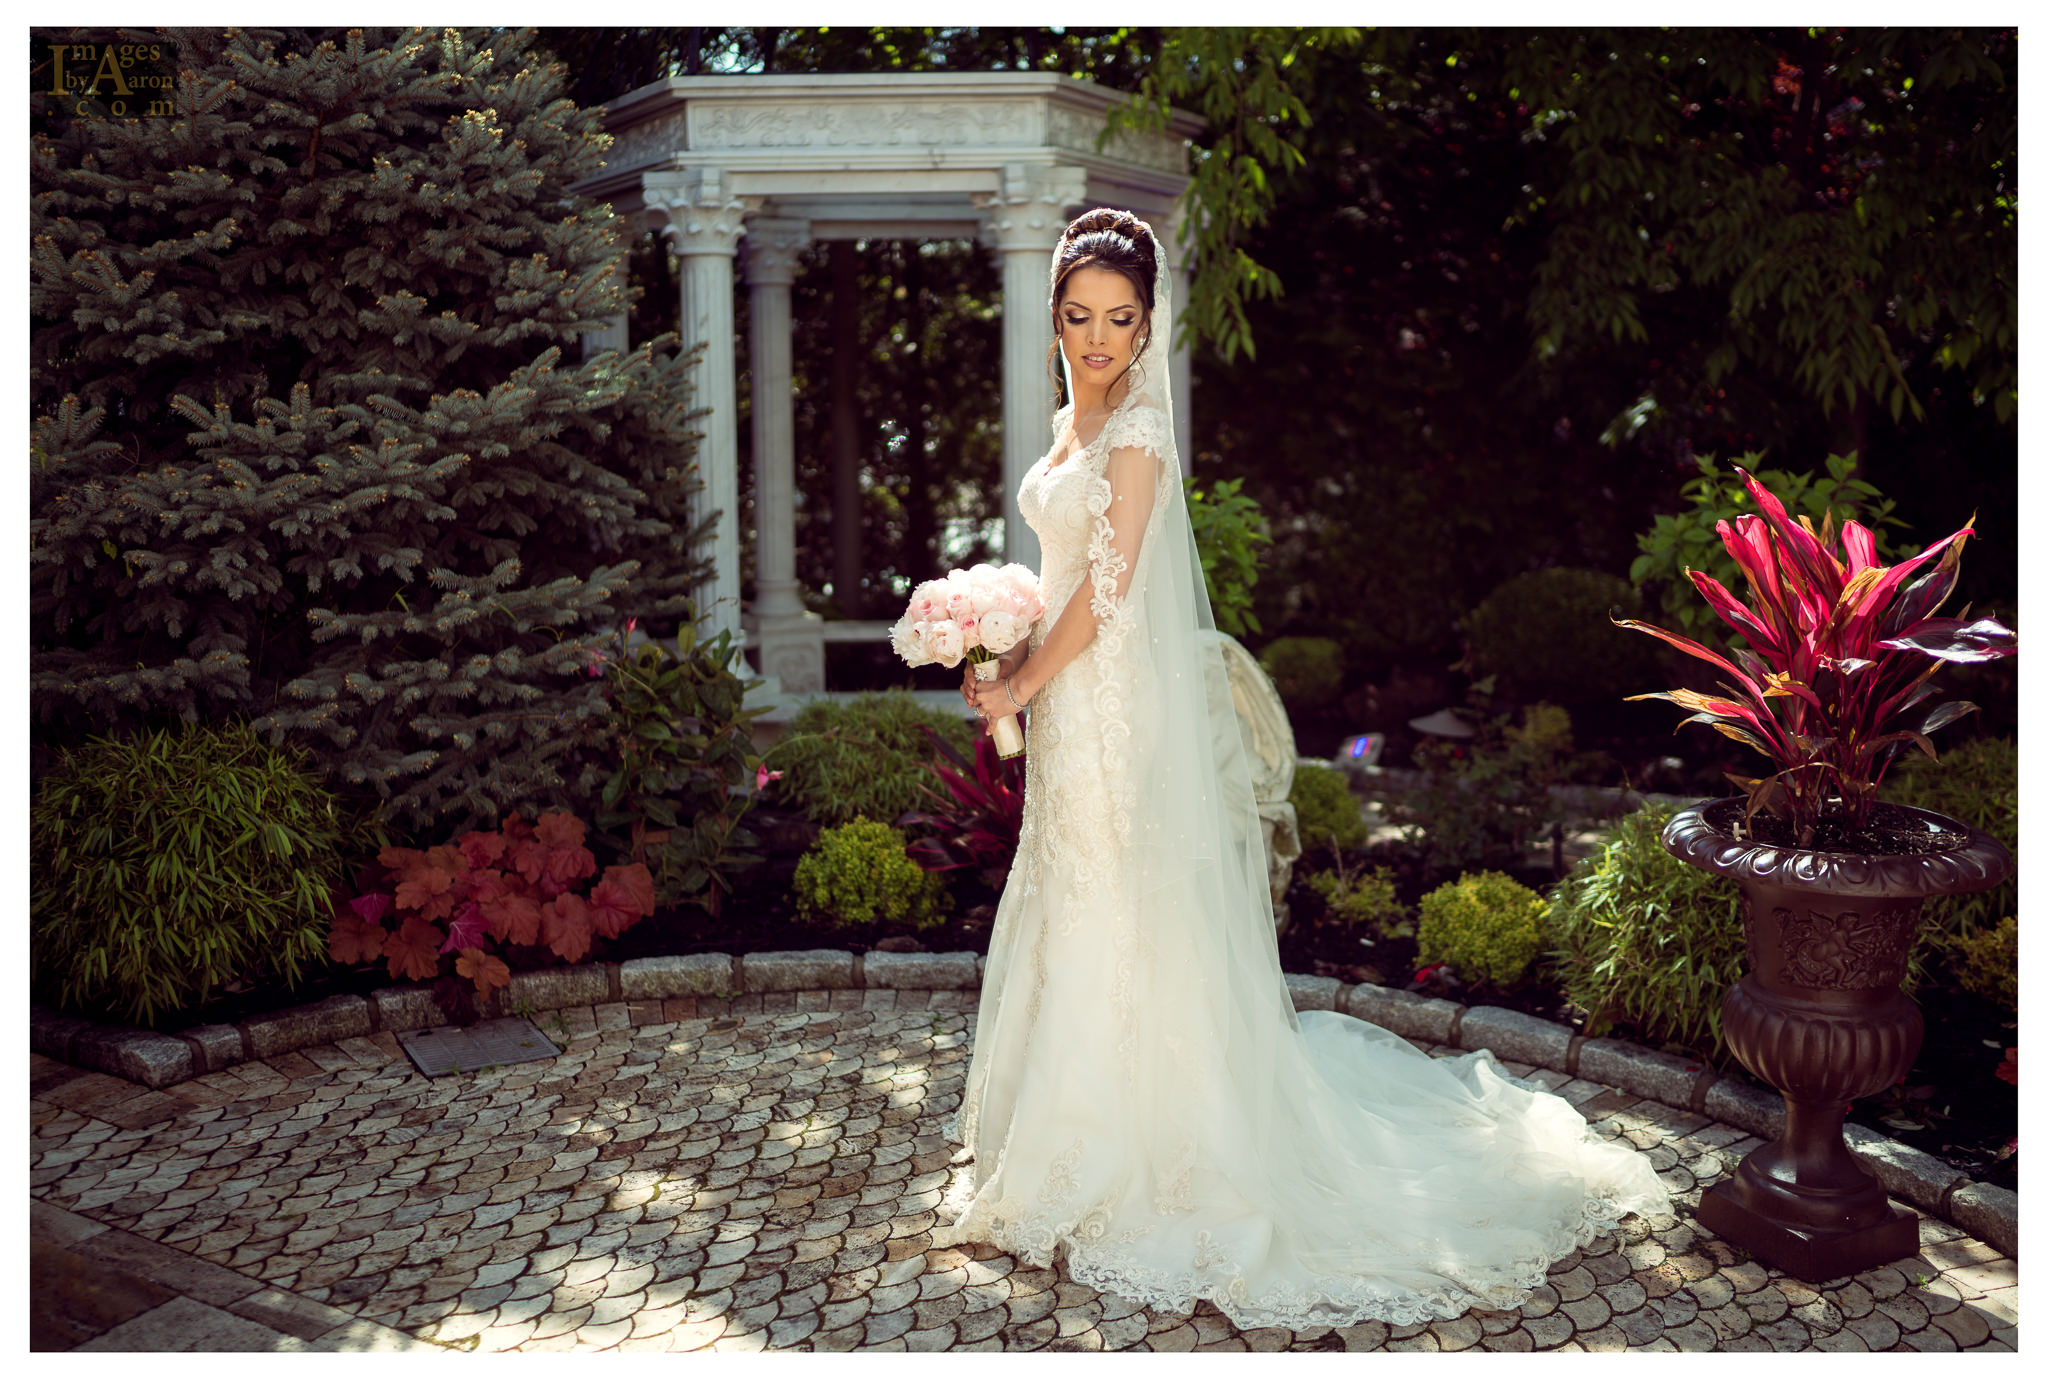 Gokce Turkish Wedding Portraits New York Photography The Royal Manor-1.jpg